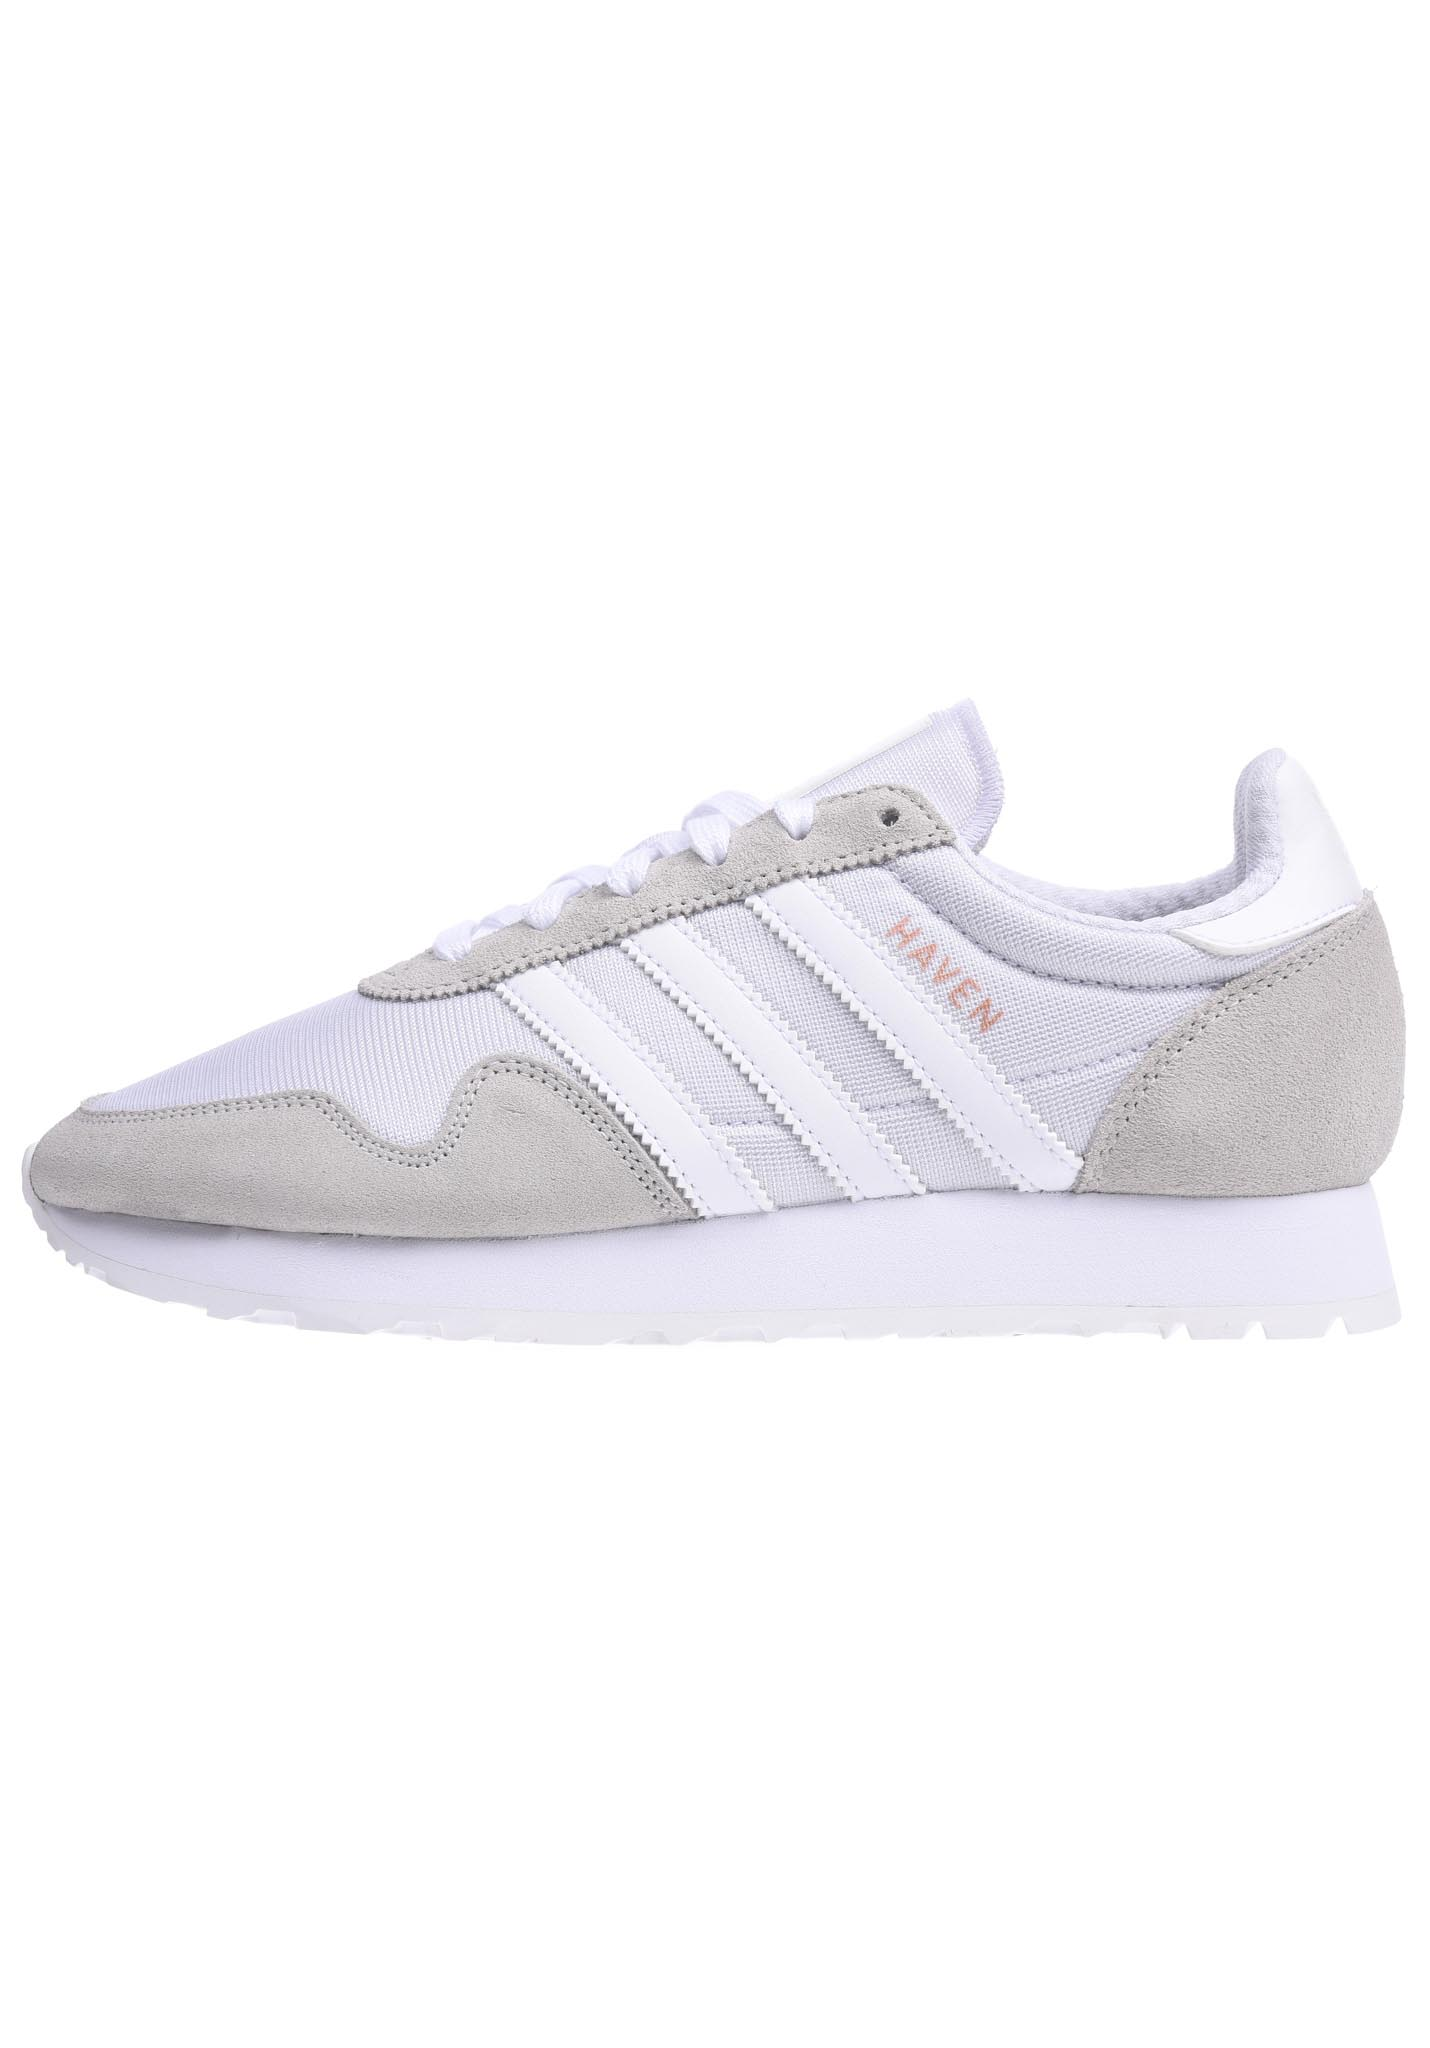 ADIDAS HAVEN BY9718 | WEIß | 43,99 ? | Sneaker | ? ?